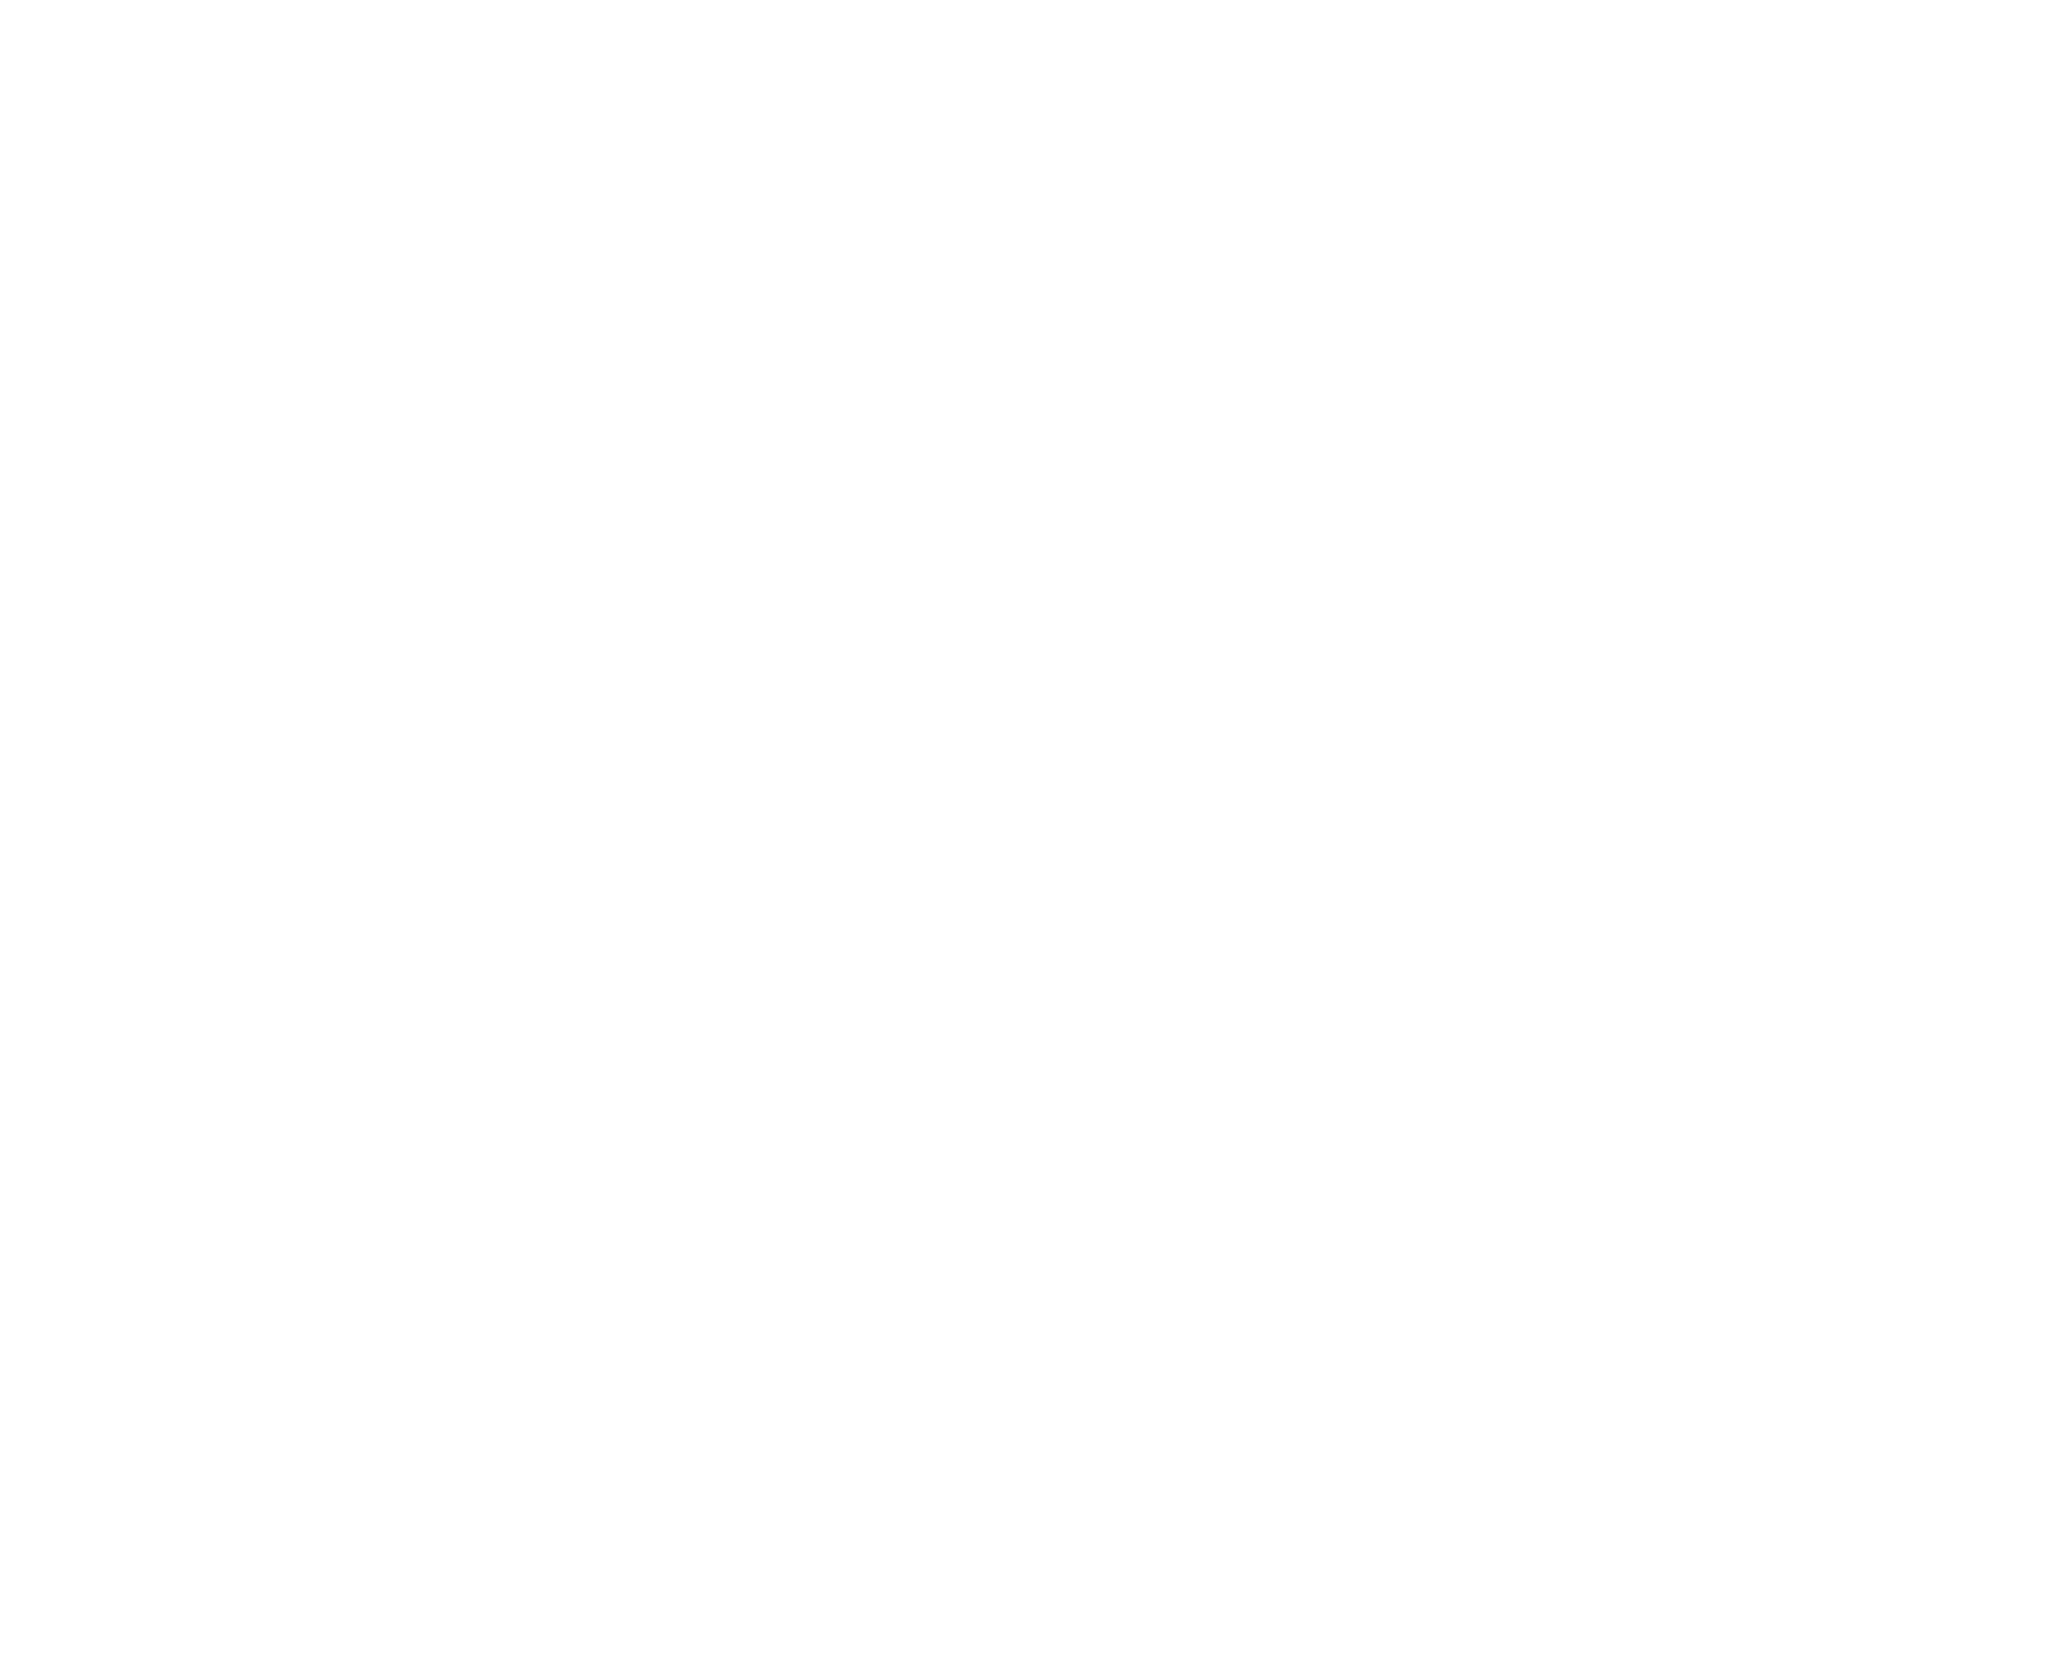 Icon representing a stack of books